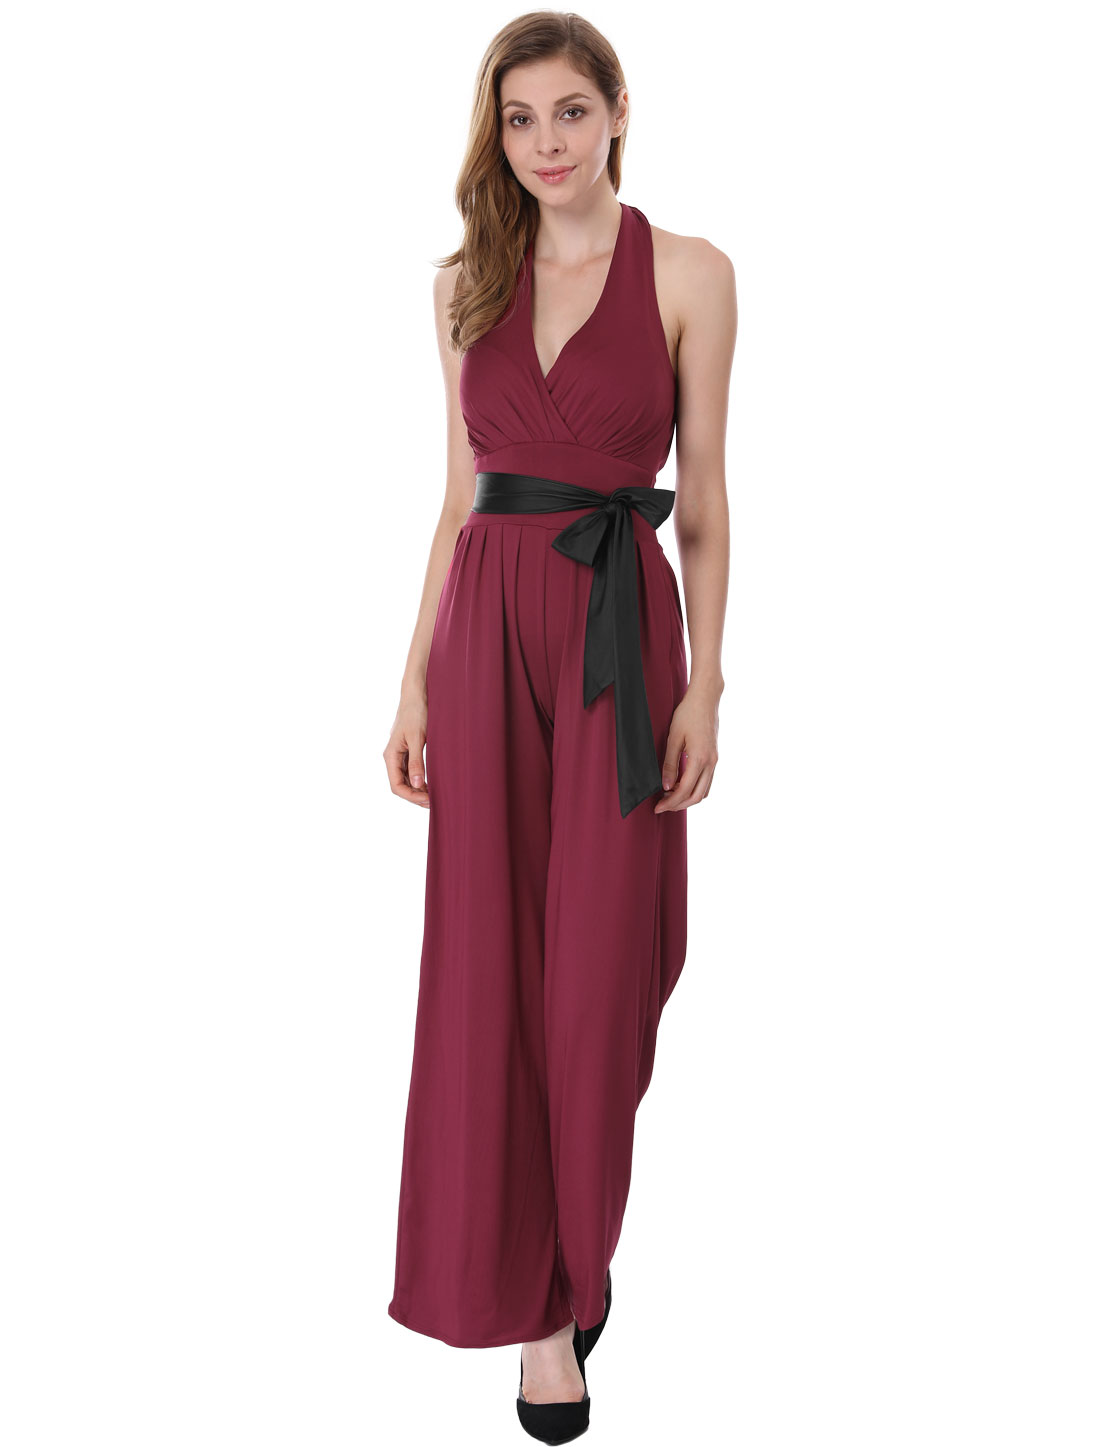 Women Sleeveless Halter Neck Wide Leg Casual Jumpsuit Burgundy XS